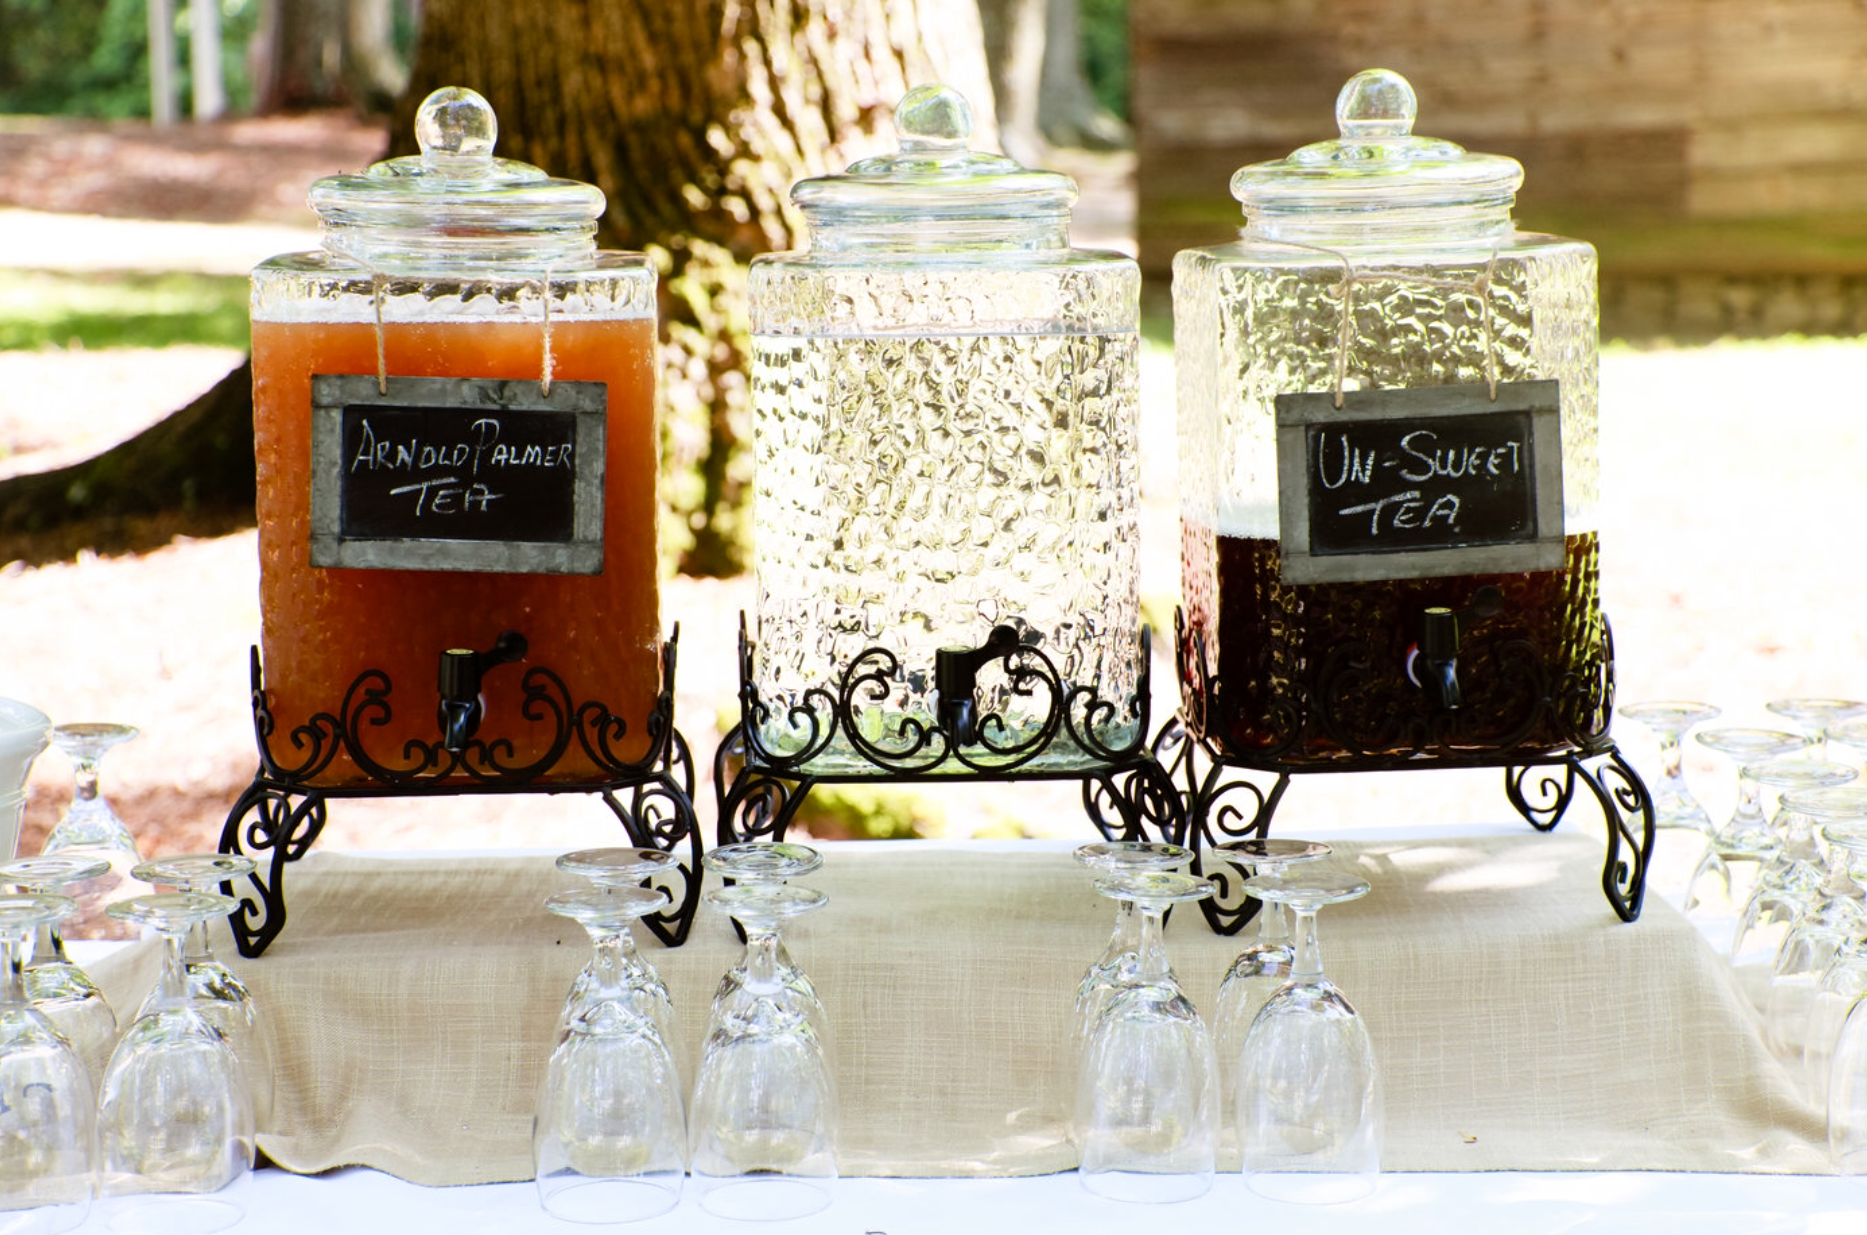 Arnold Palmer Cocktail - Southern Weddings - Oconee Events - Sweet Tea Station - Food Table Ideas